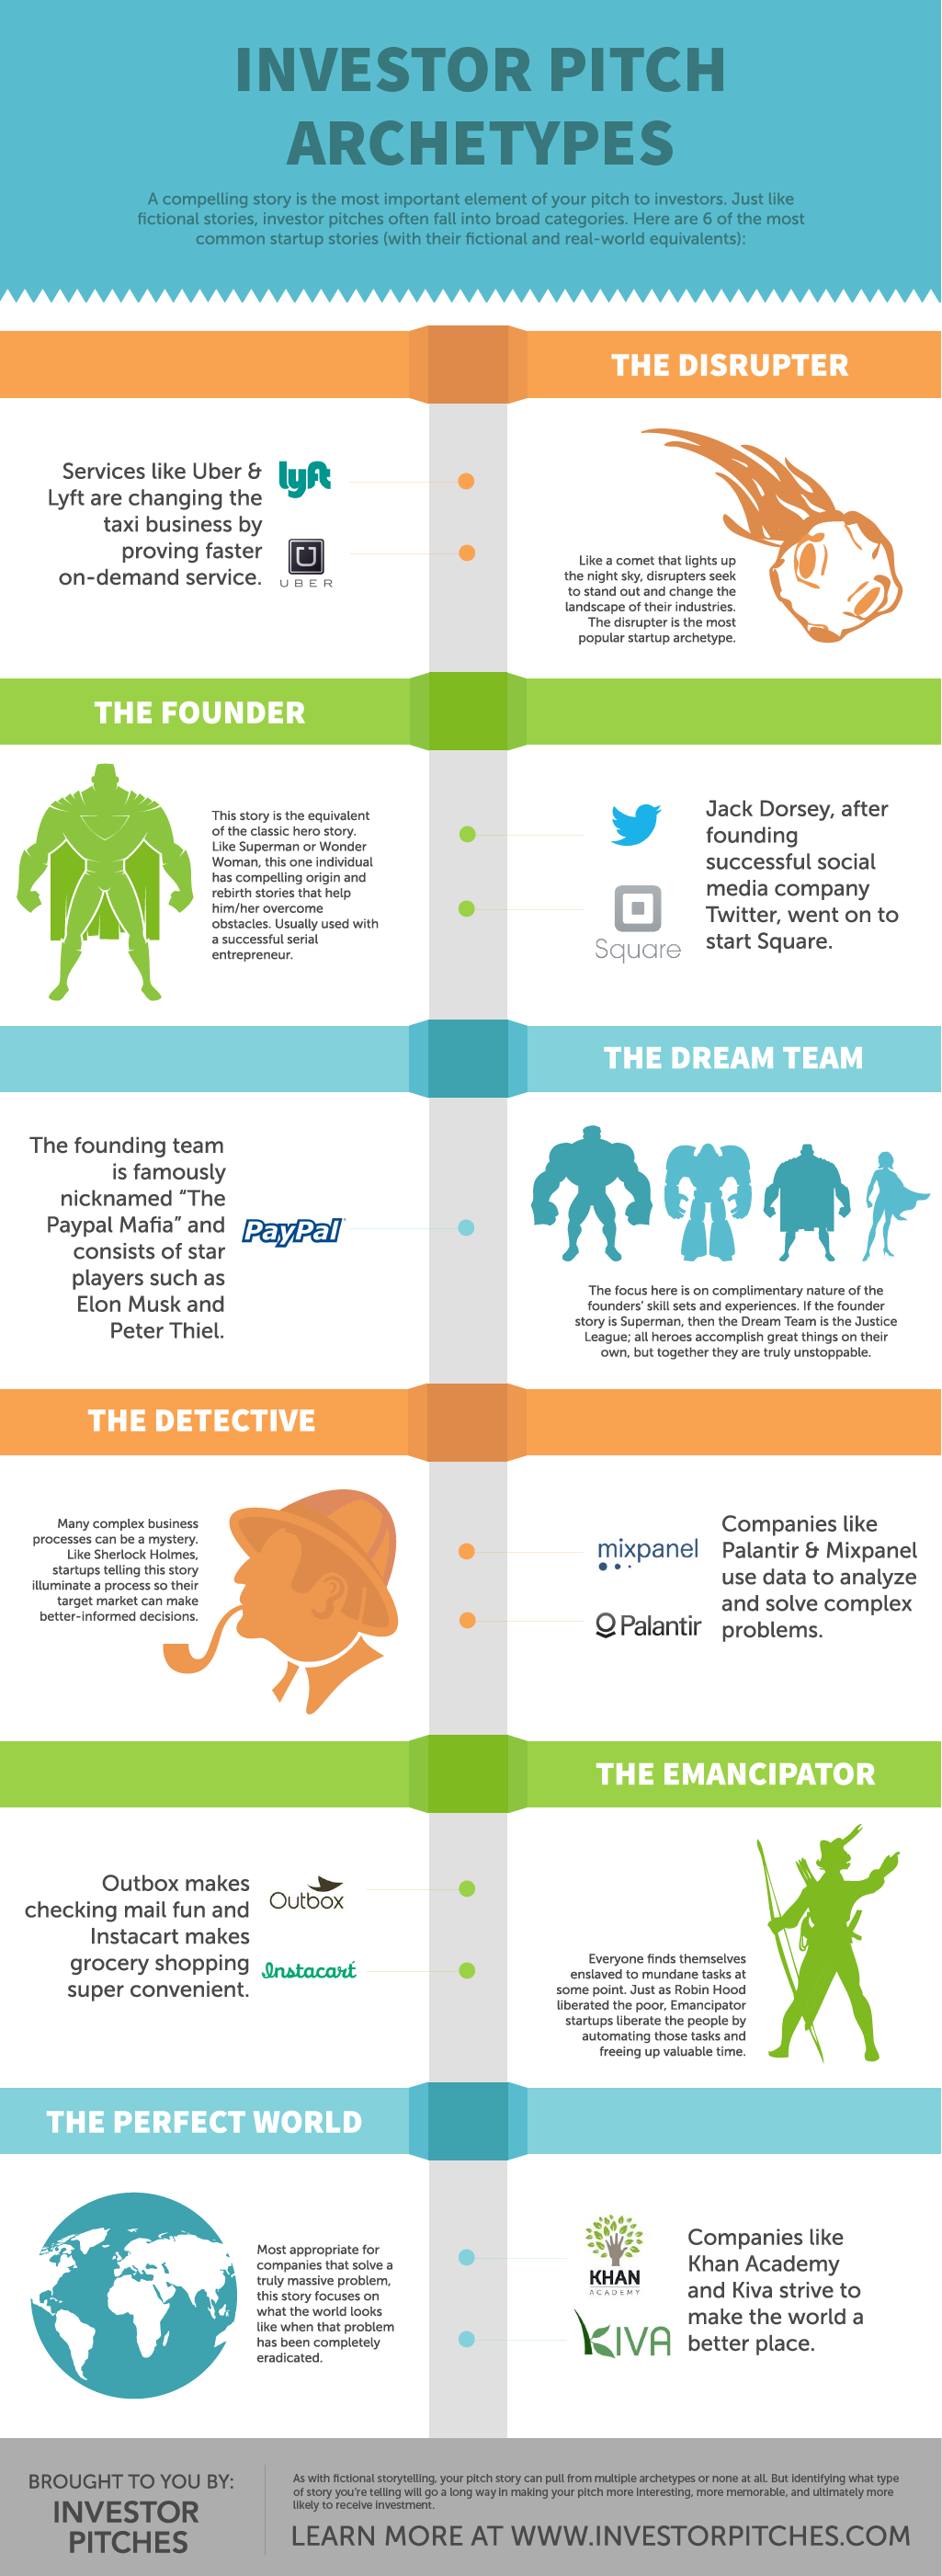 infographic-sol-investor-pitch-archetypes_v6